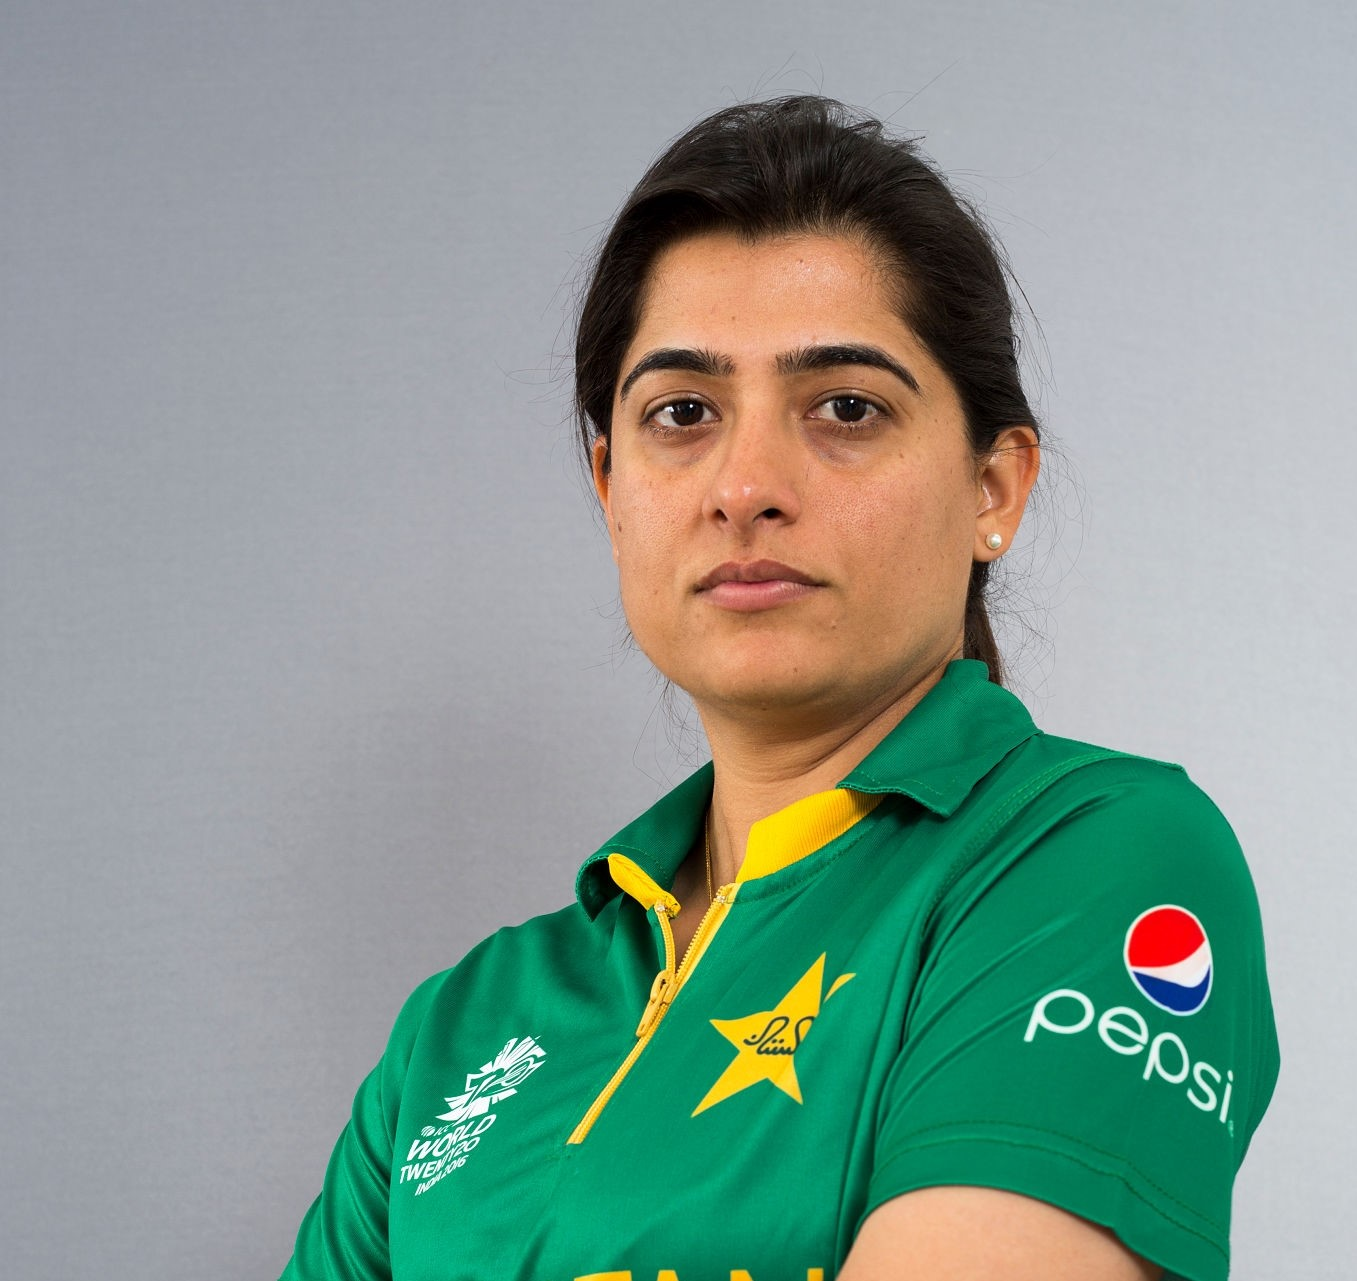 All-rounder Sana Mir decided to take a break from international cricket